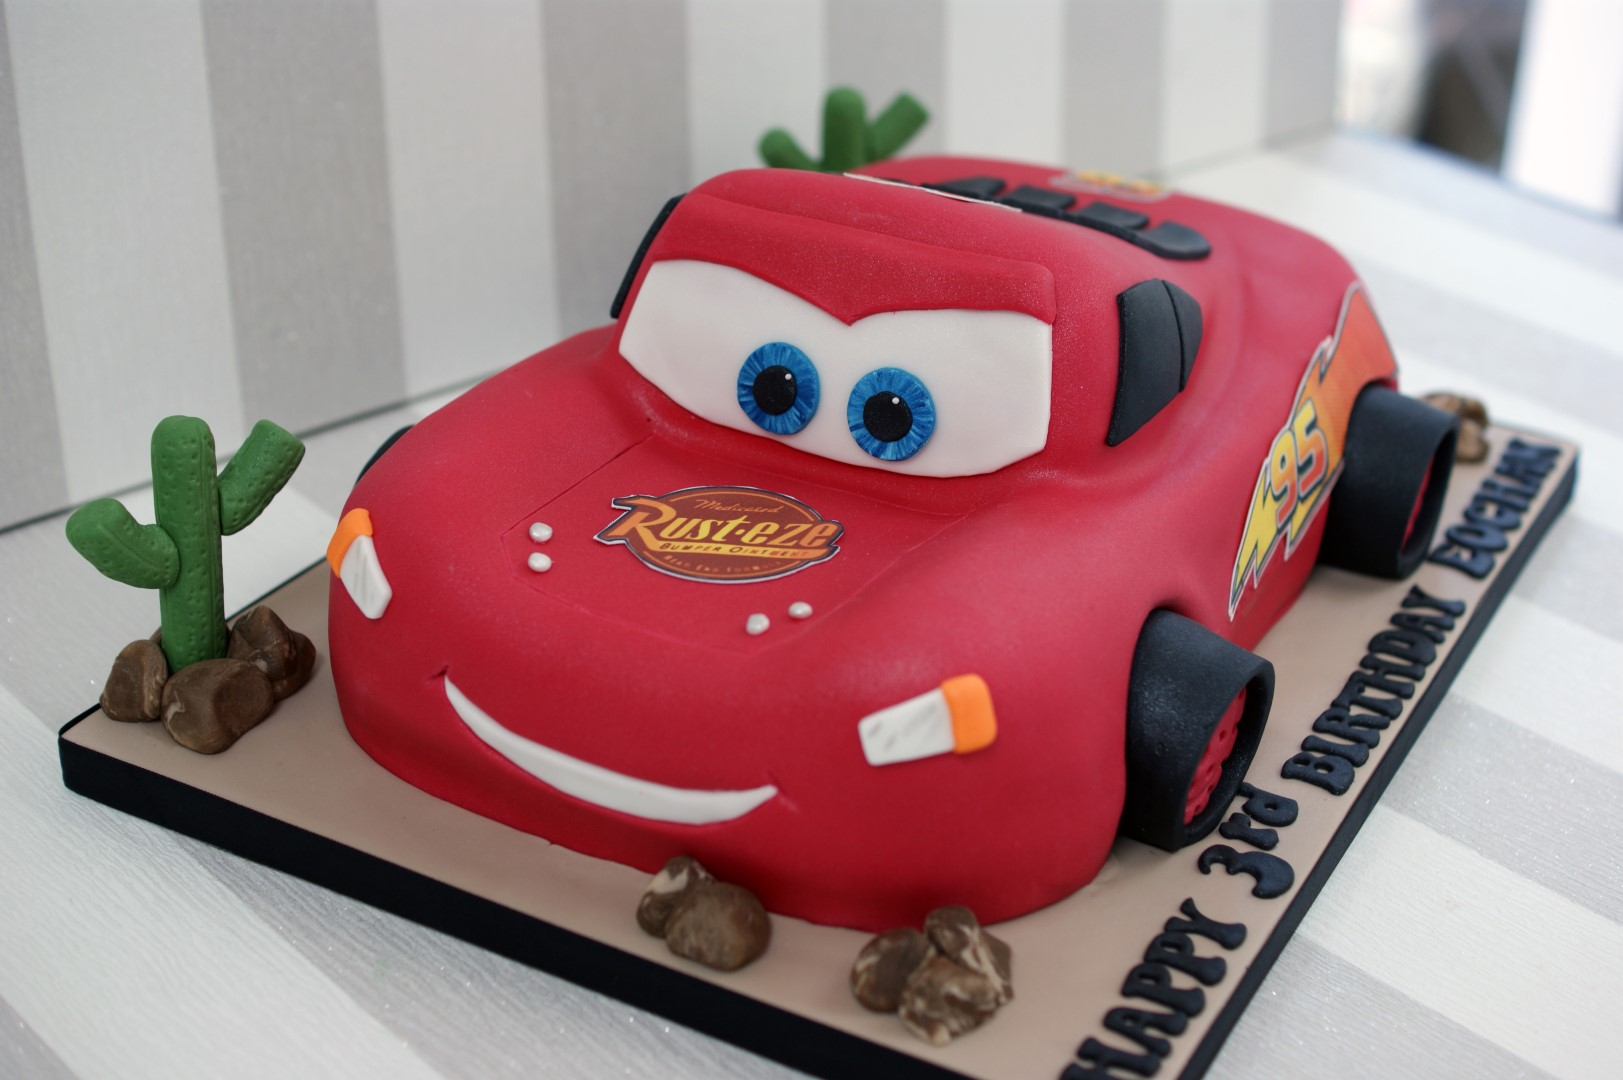 Lighting Mcqueen Birthday Cake Ideas